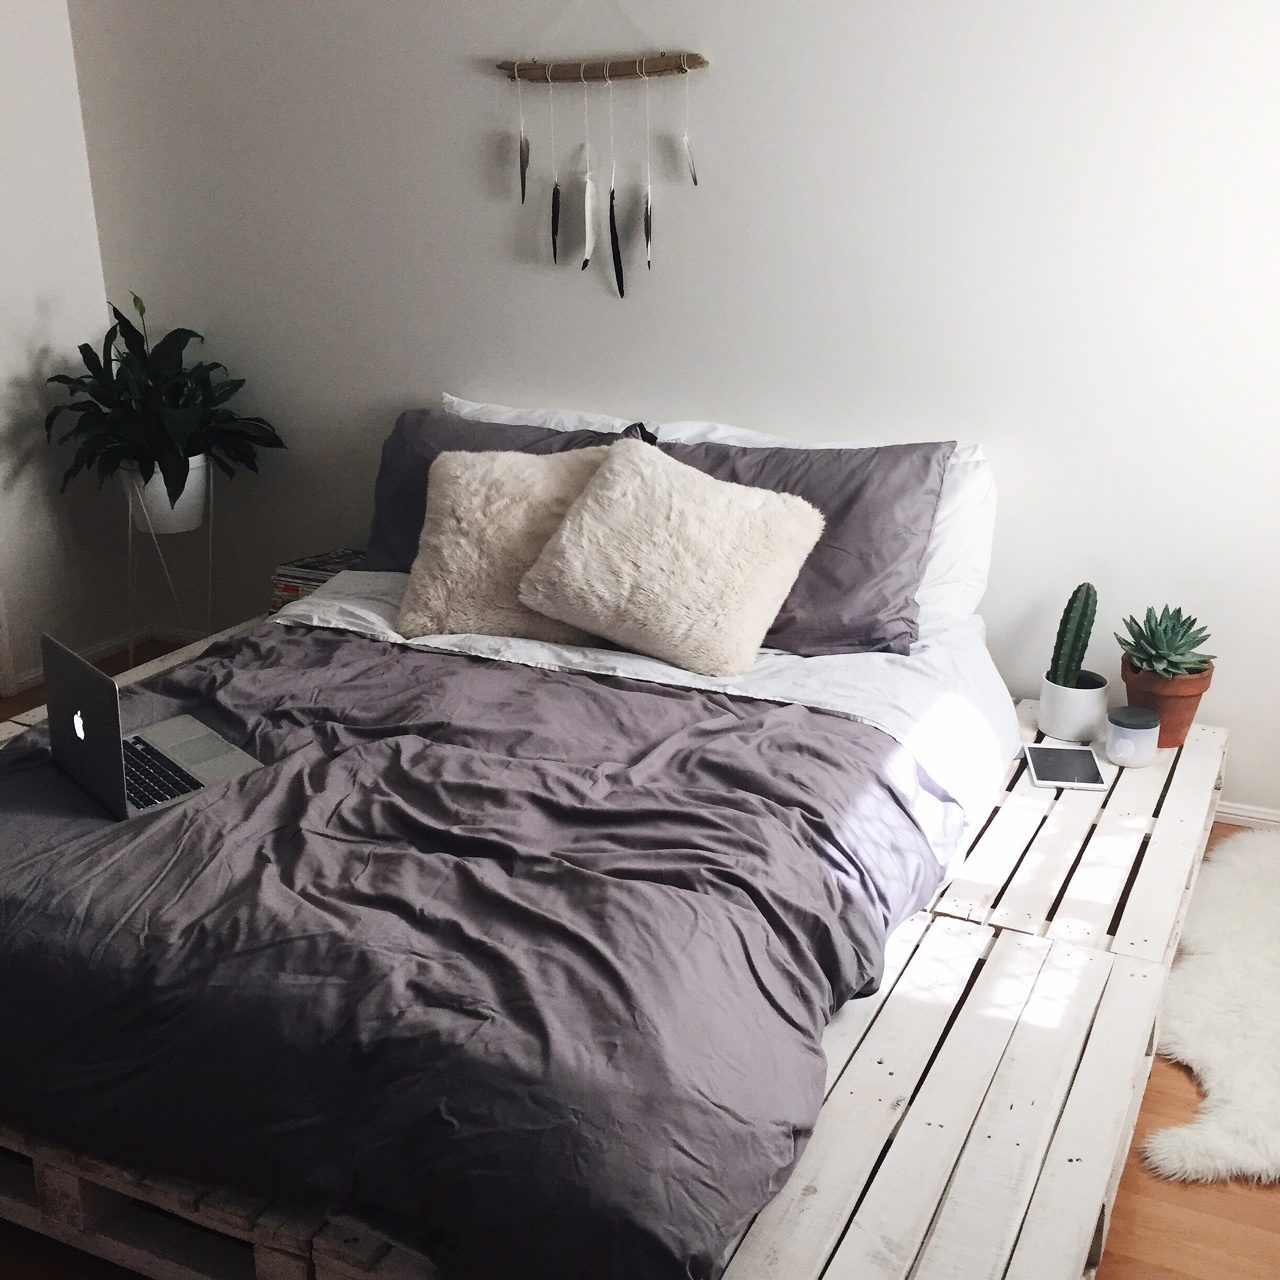 Succulents In The Bedroom: Turning Your Bedroom Into A